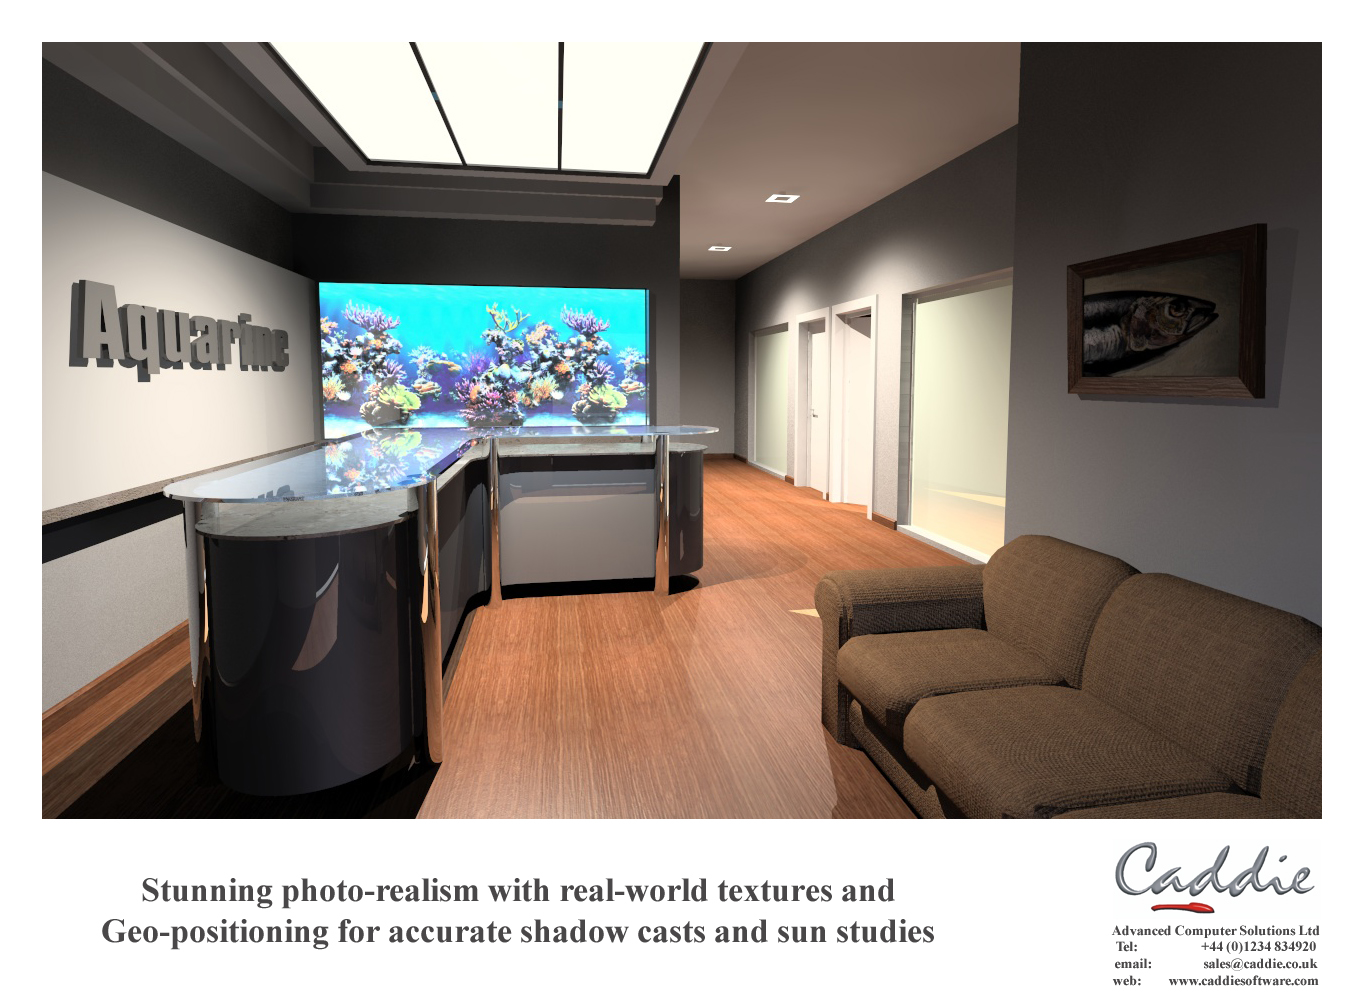 Rendering of a reception area modeled in Caddie